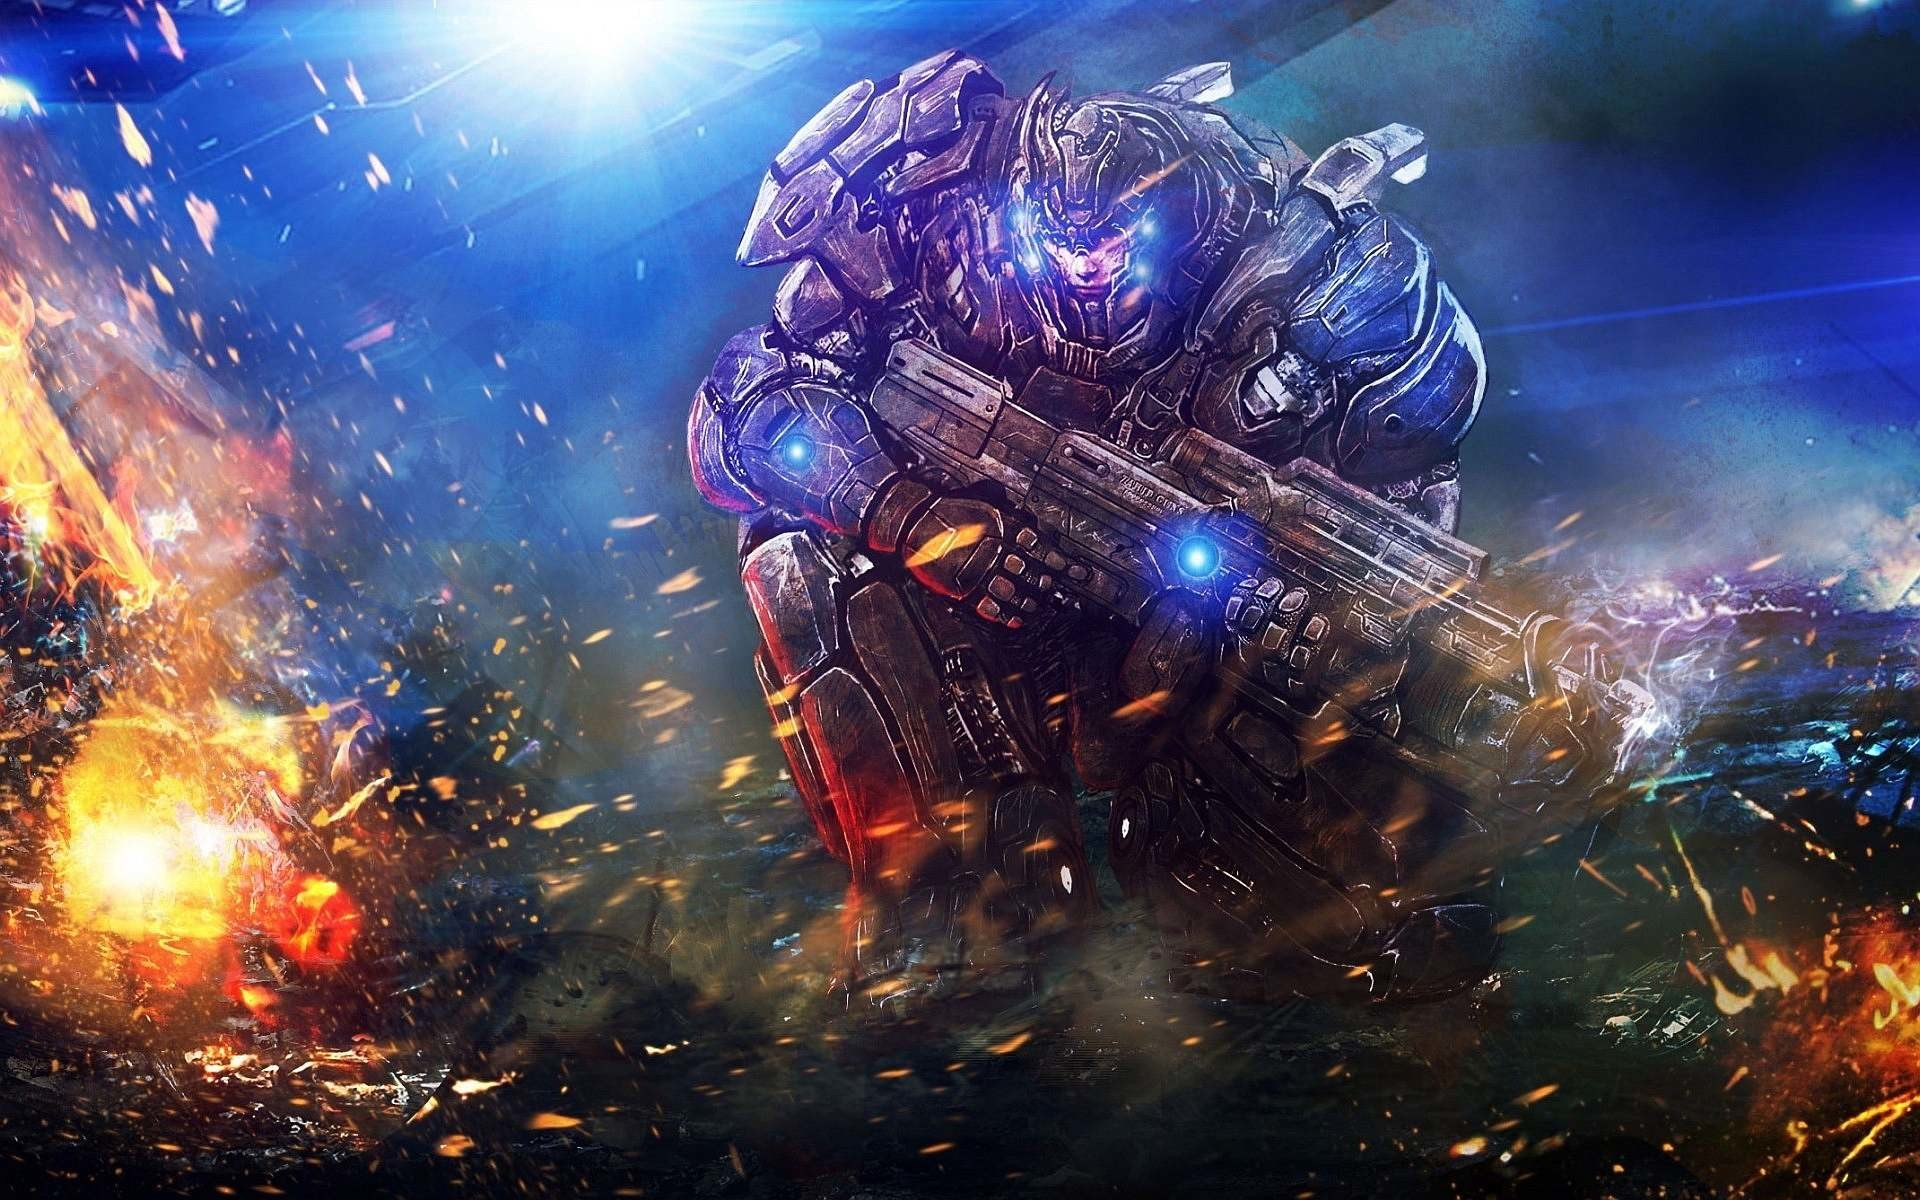 1920x1200 Space Marine Desktop Wallpaper, Space Marine Images, New Wallpapers